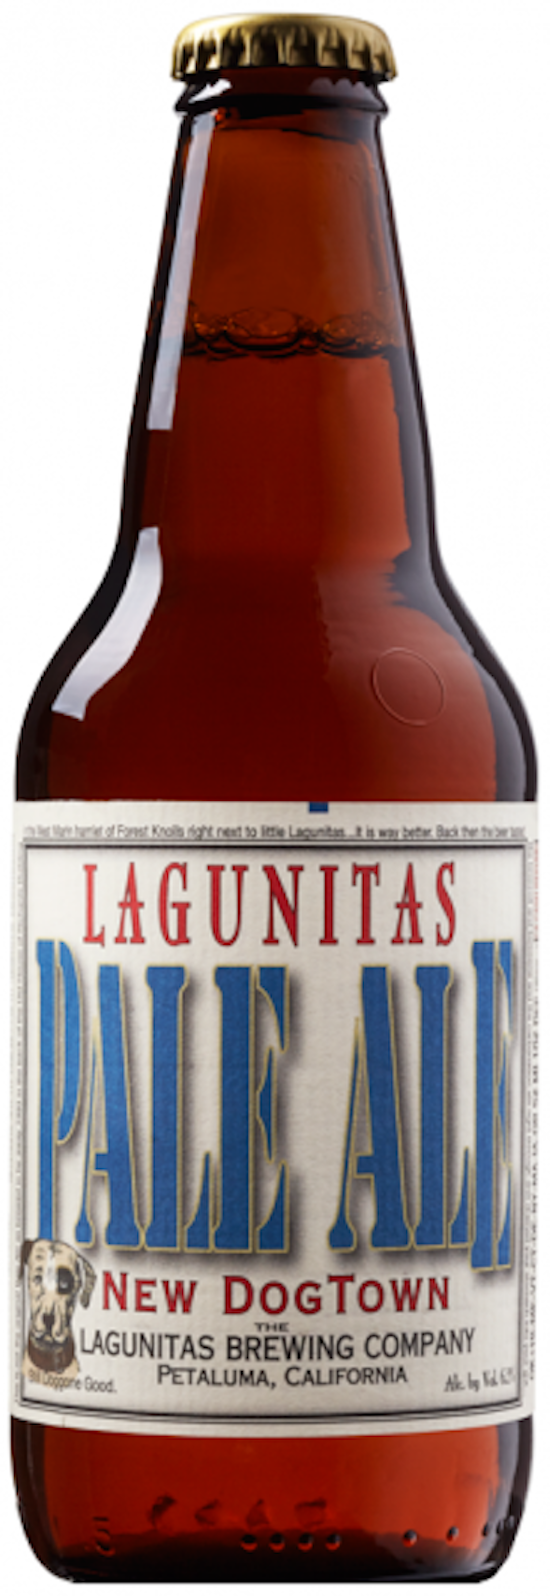 lagunitas-brewing-company-new-dogtown-pale-ale_1462381757